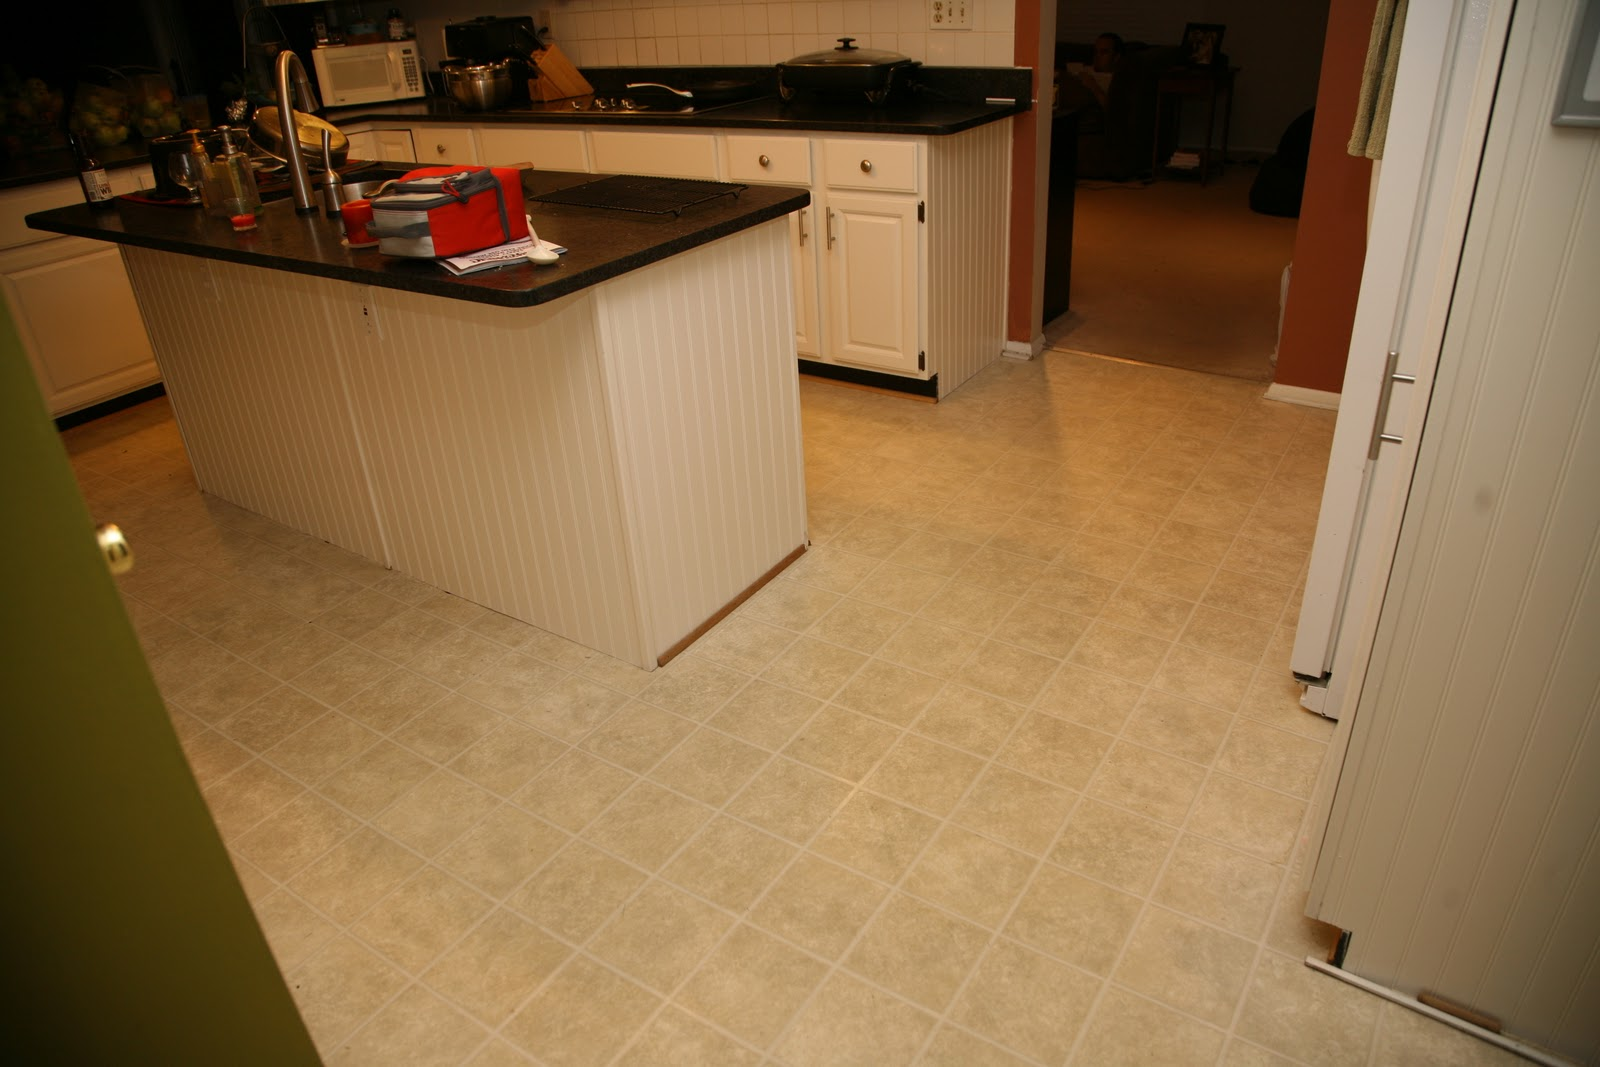 Shutter mug new kitchen floors for Flooring for kitchen floors